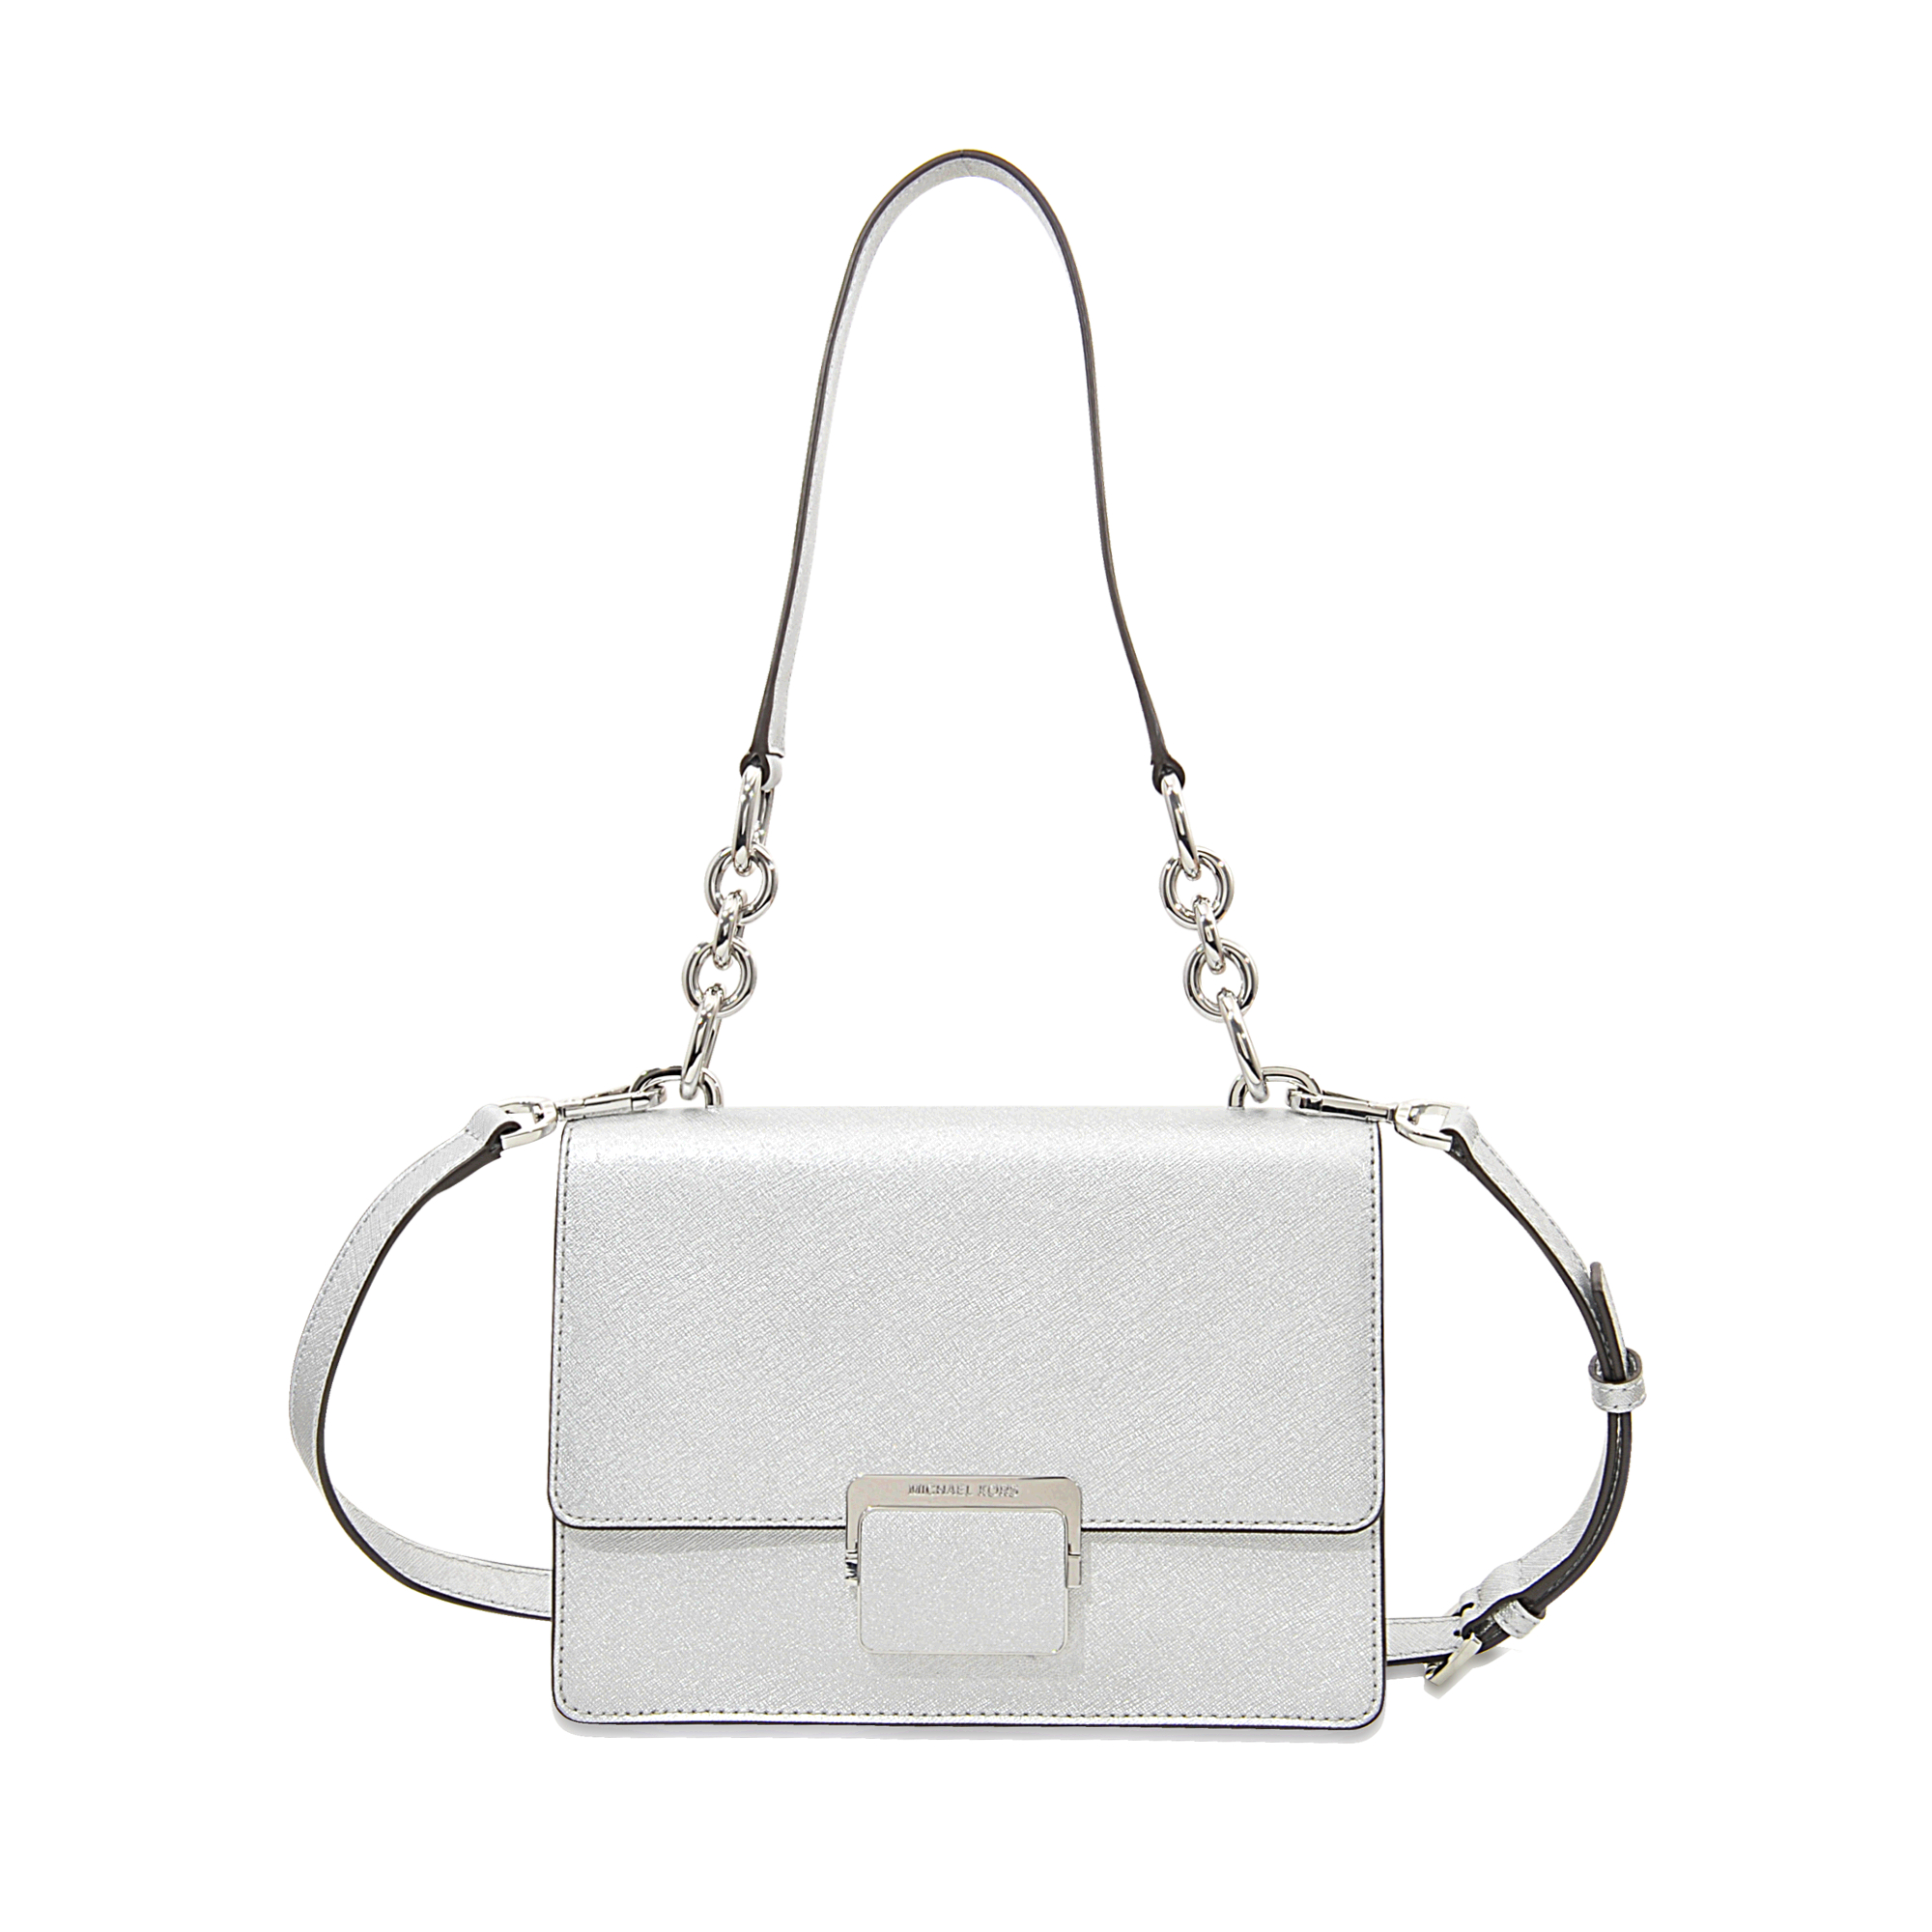 Michael michael kors Cynthia Small Shoulder Bag in White | Lyst